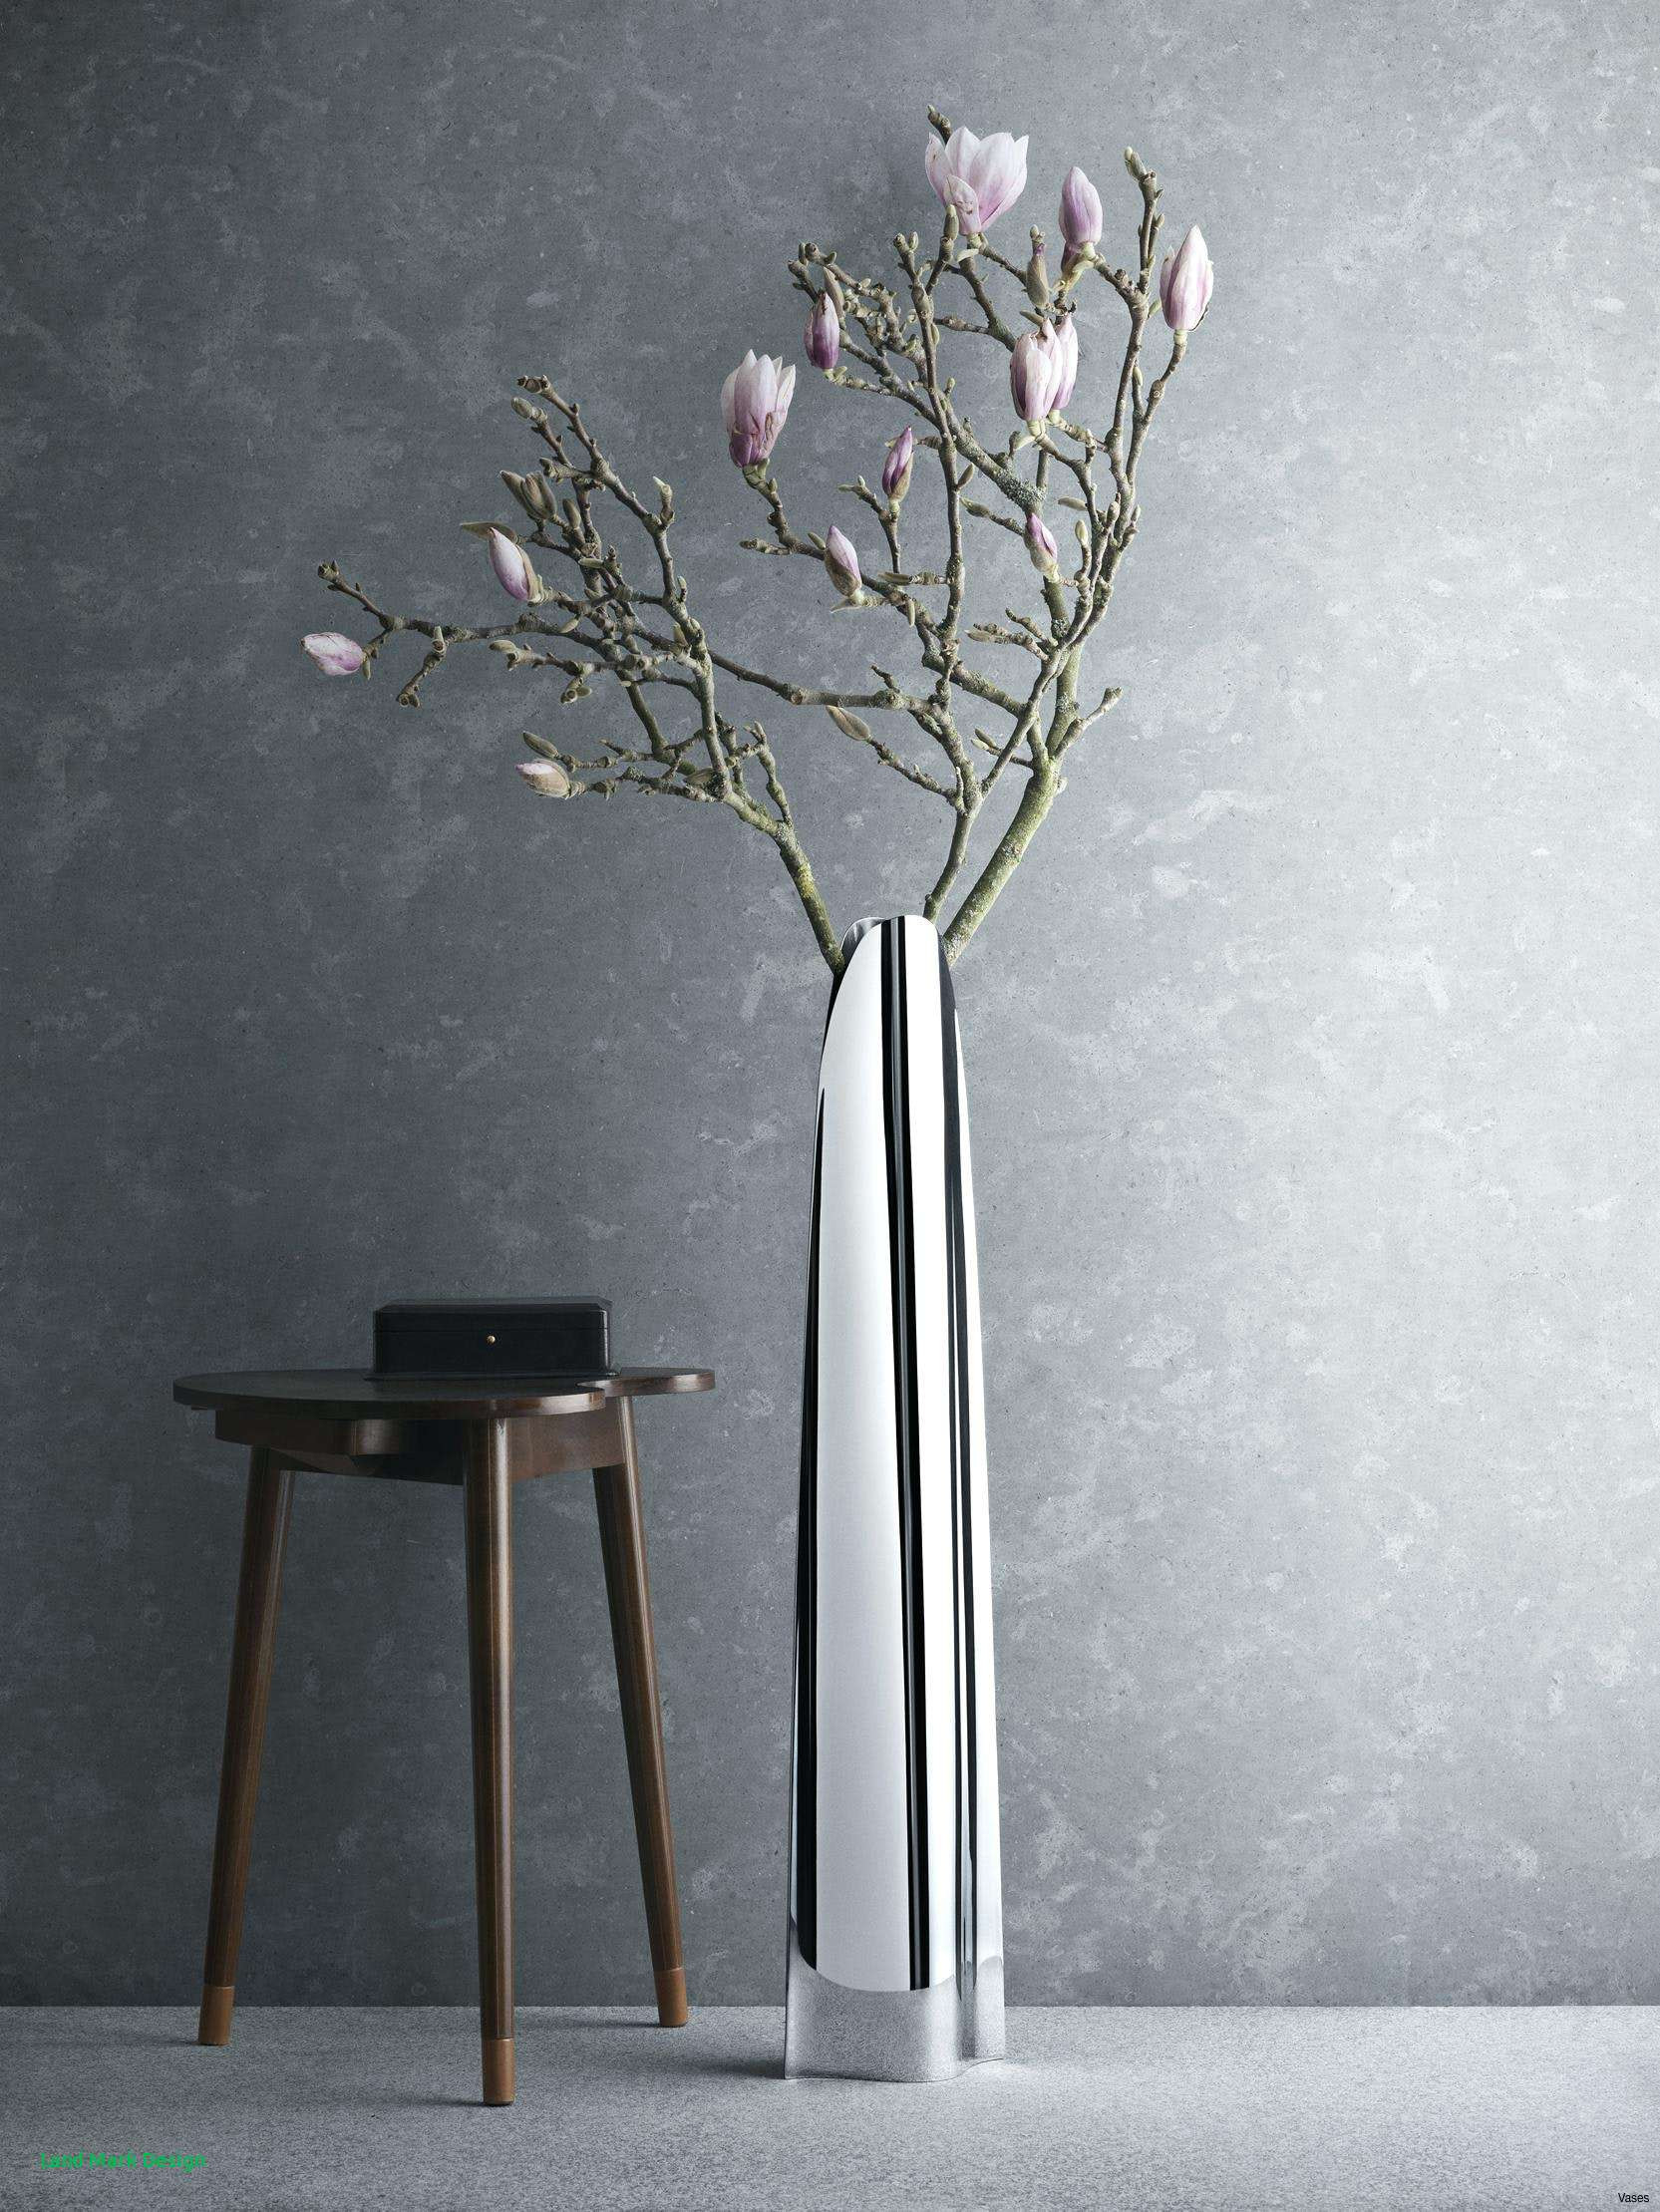 extra large floor vases of tall floor vases contemporary design home design in silver floor vases vase tall standing uk modern with flowersh flowersi 0d